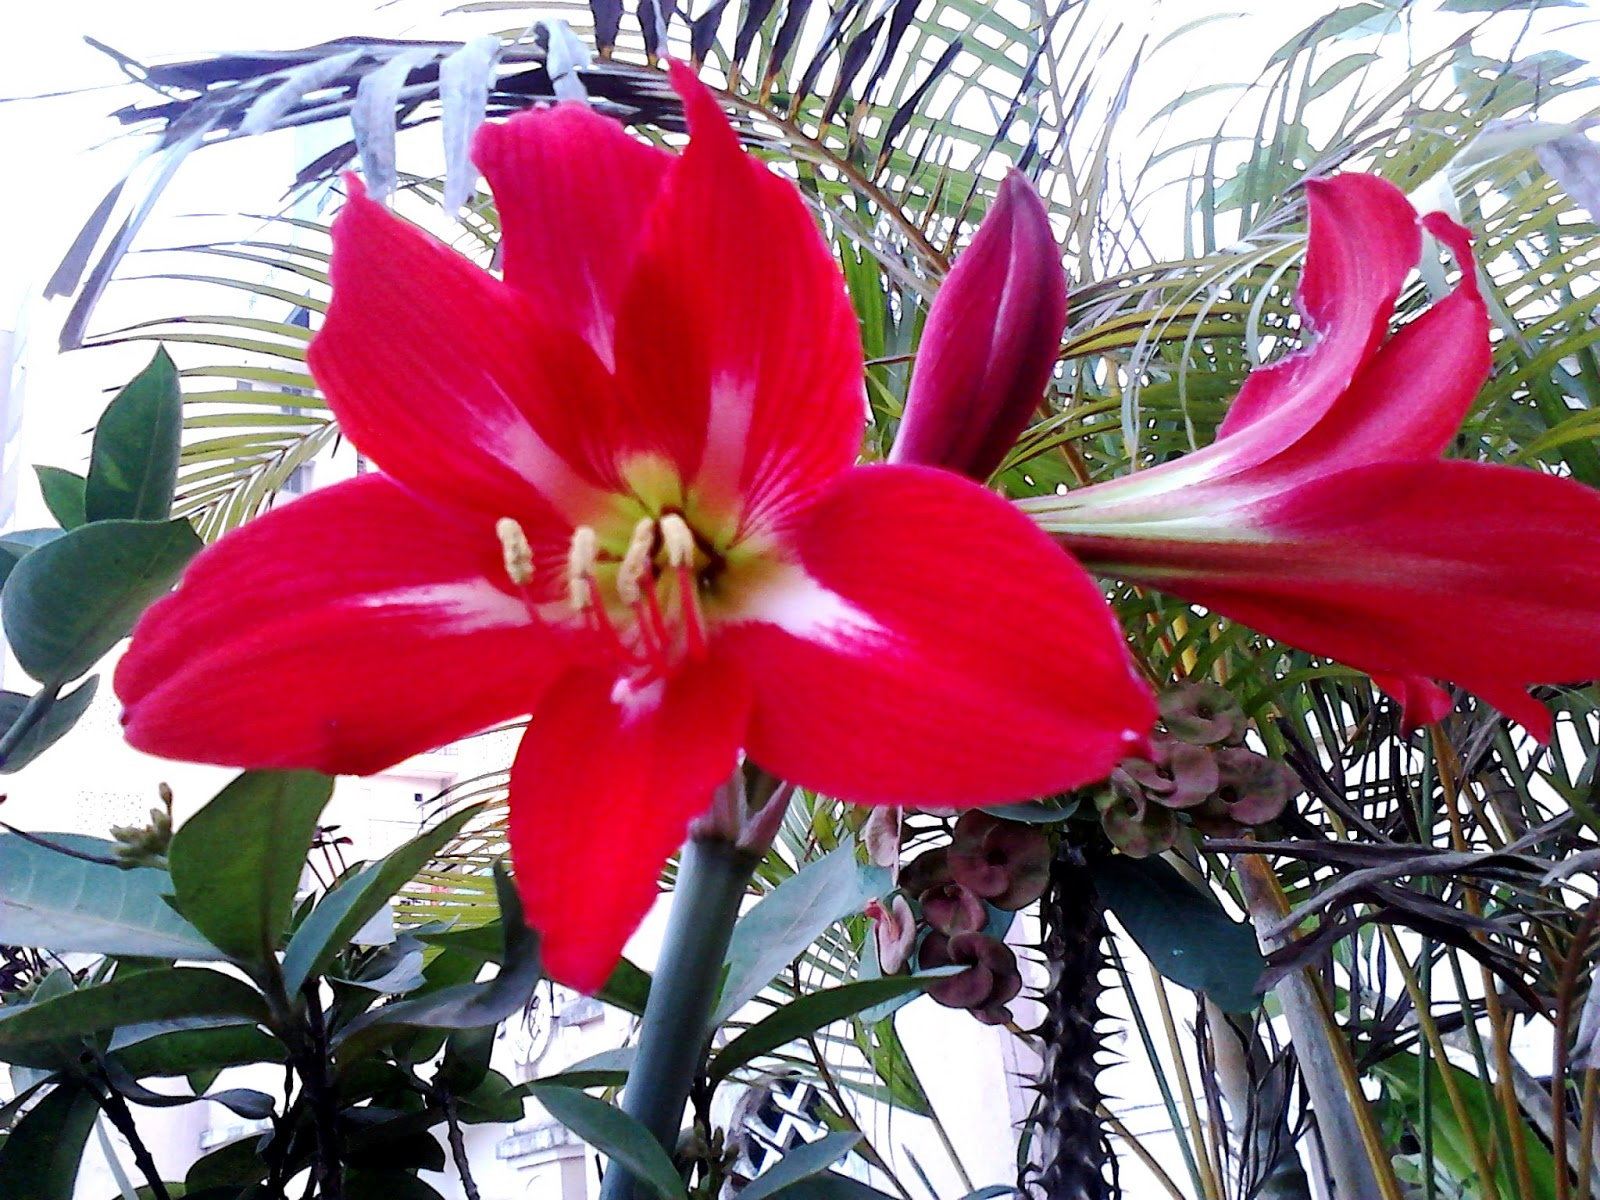 Big Red Flowers Of Lily Photo By Mrs Rizwana A.Mundewadi